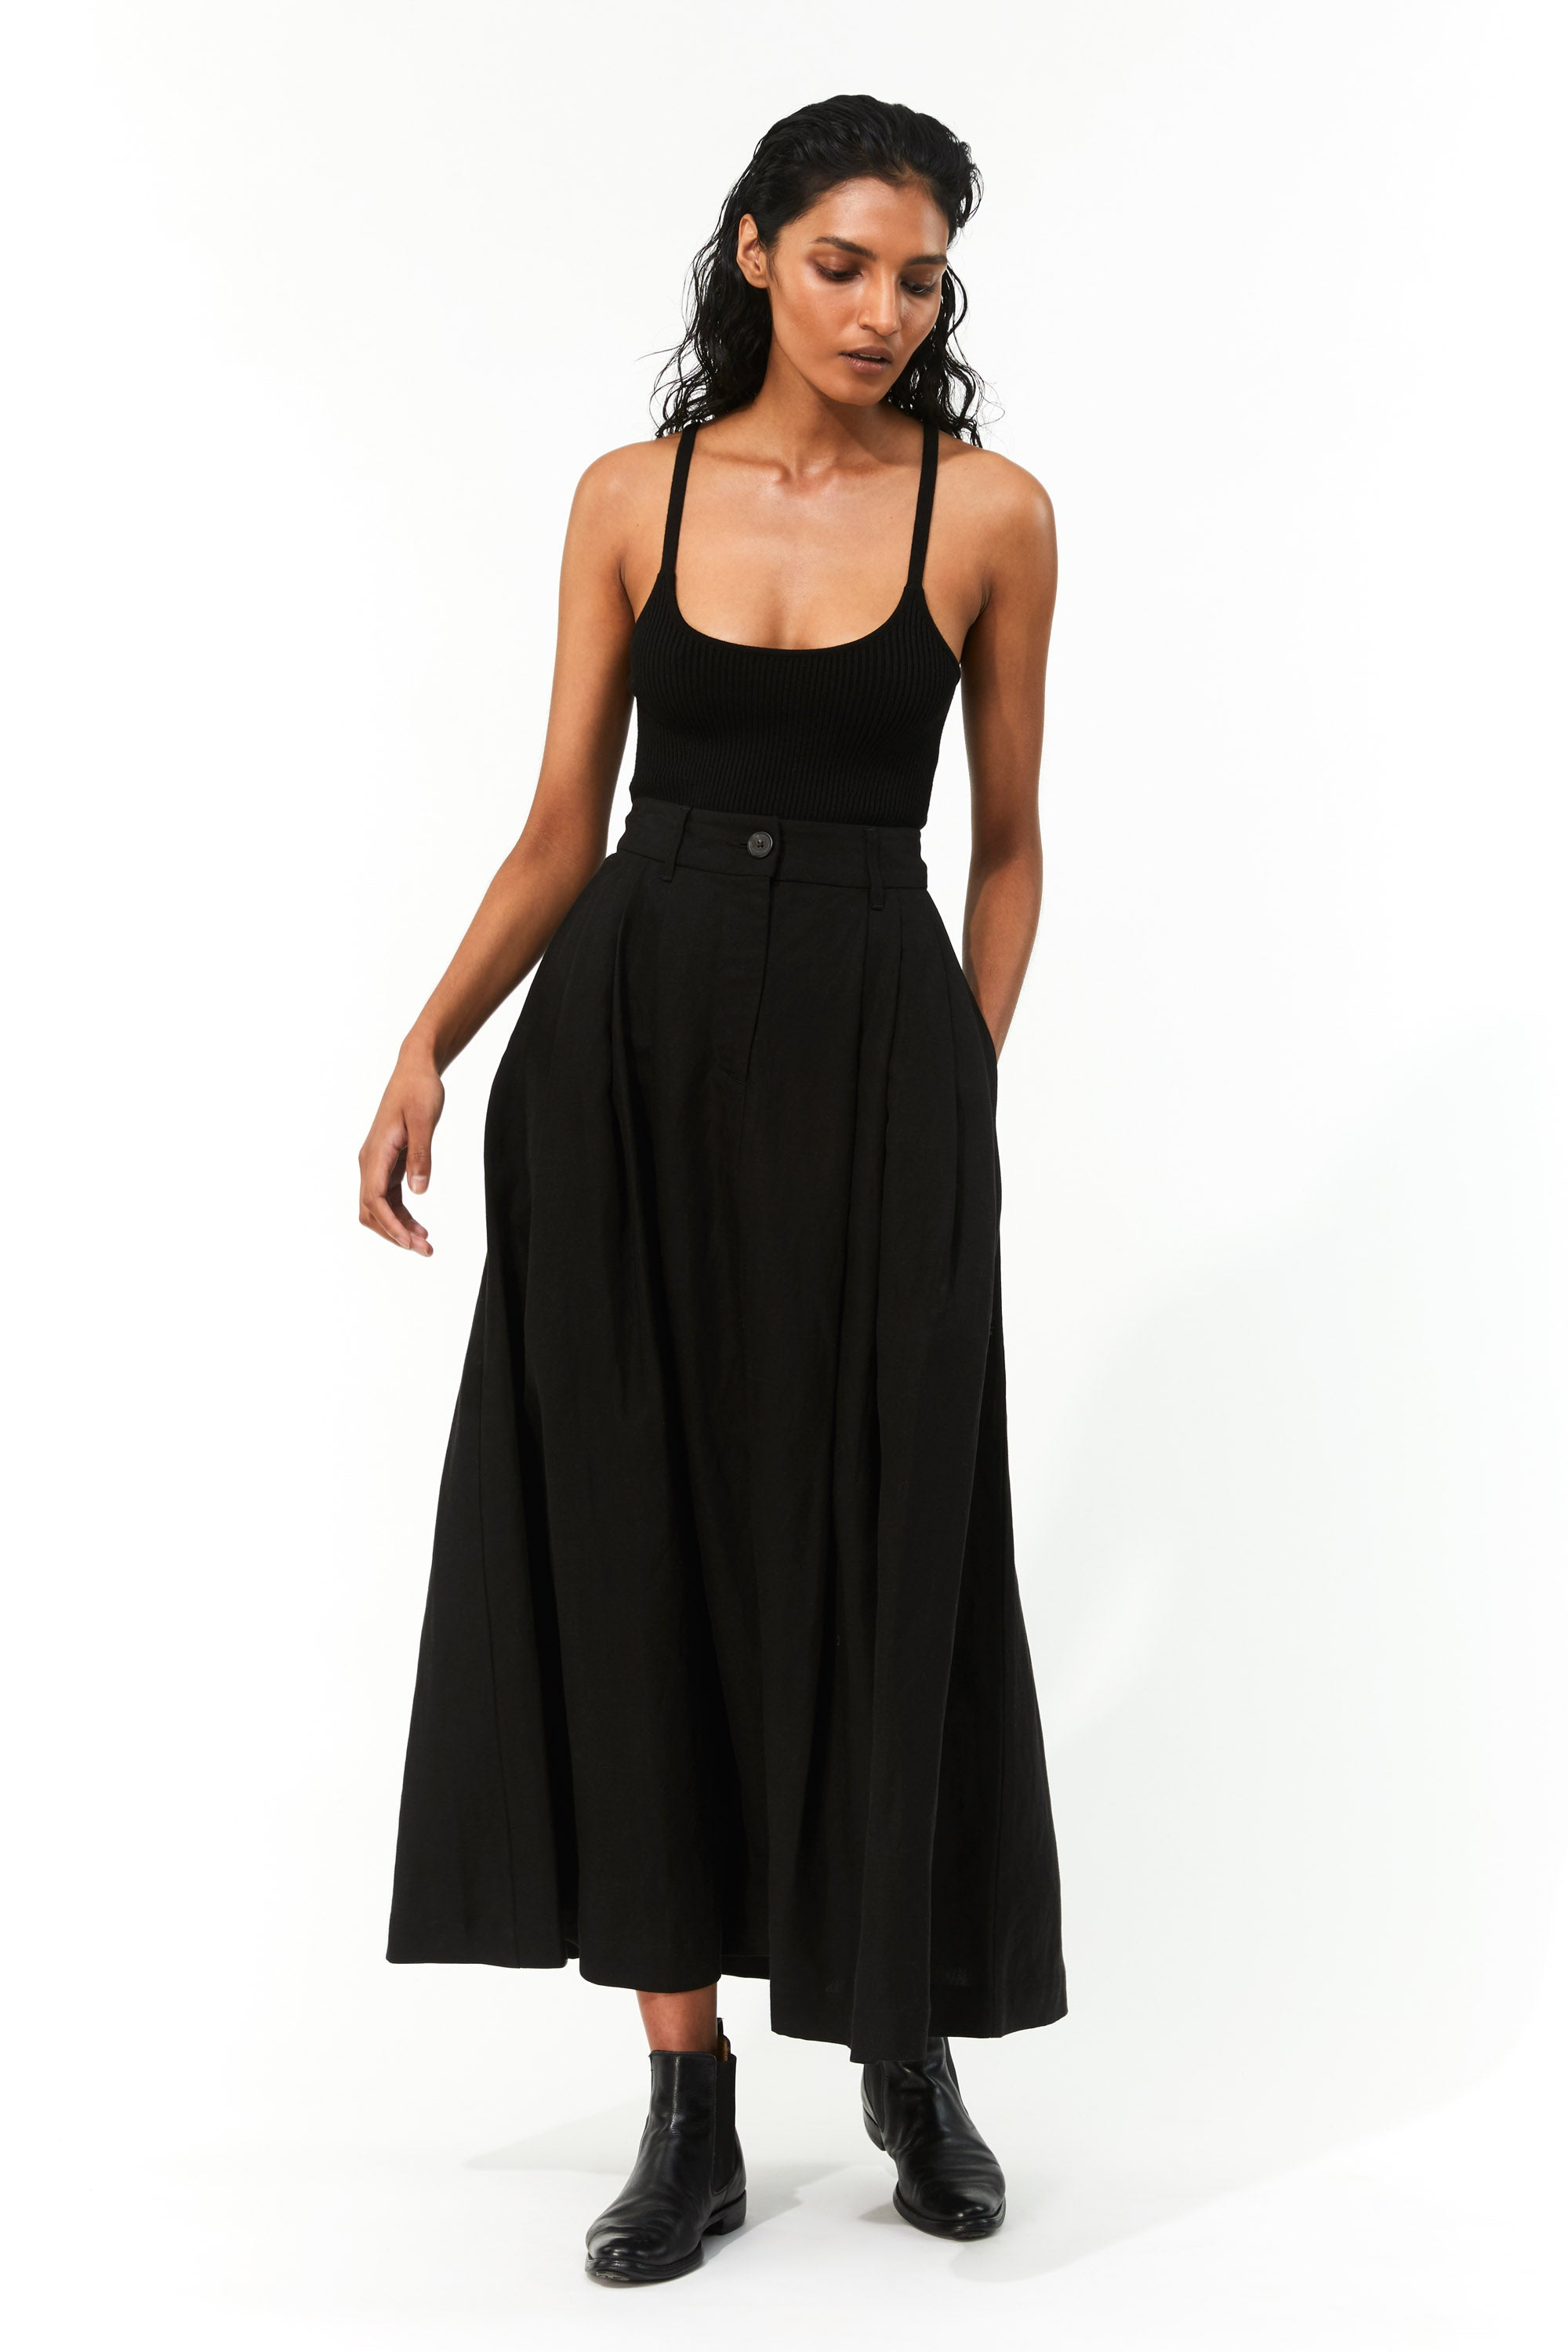 Mara Hoffman Black Caro Sweater in Tencel Modal (with Tulay Skirt)